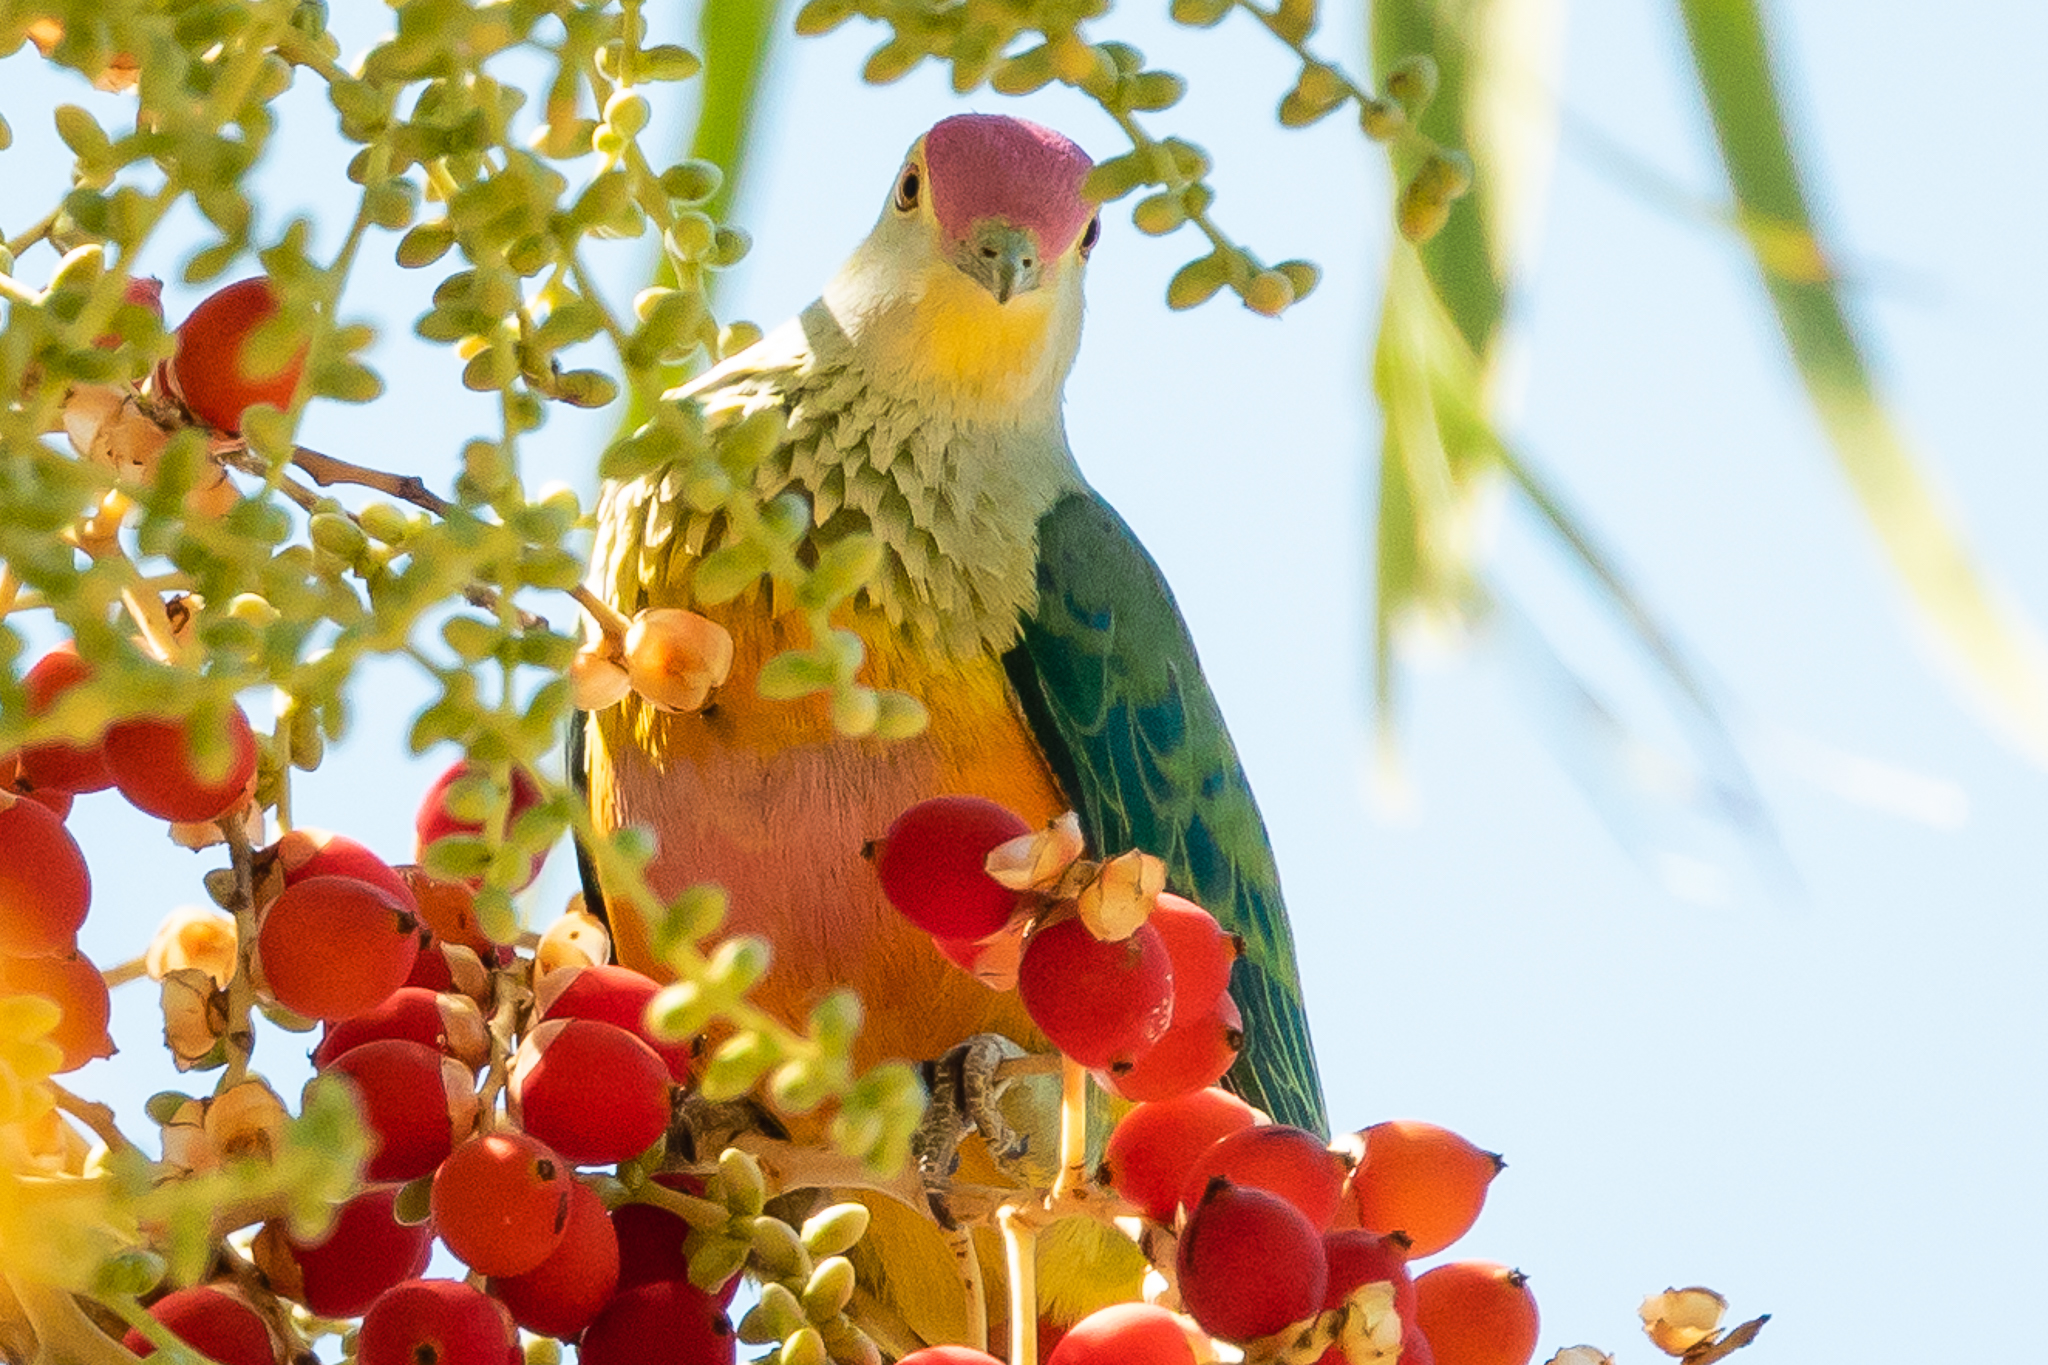 Rose-crowned Fruit-Doves inhabit the north and east of Australia, in coastal tropical and sub-tropical forest. They feed on ripe fruit, figs and Camphor Laurel.